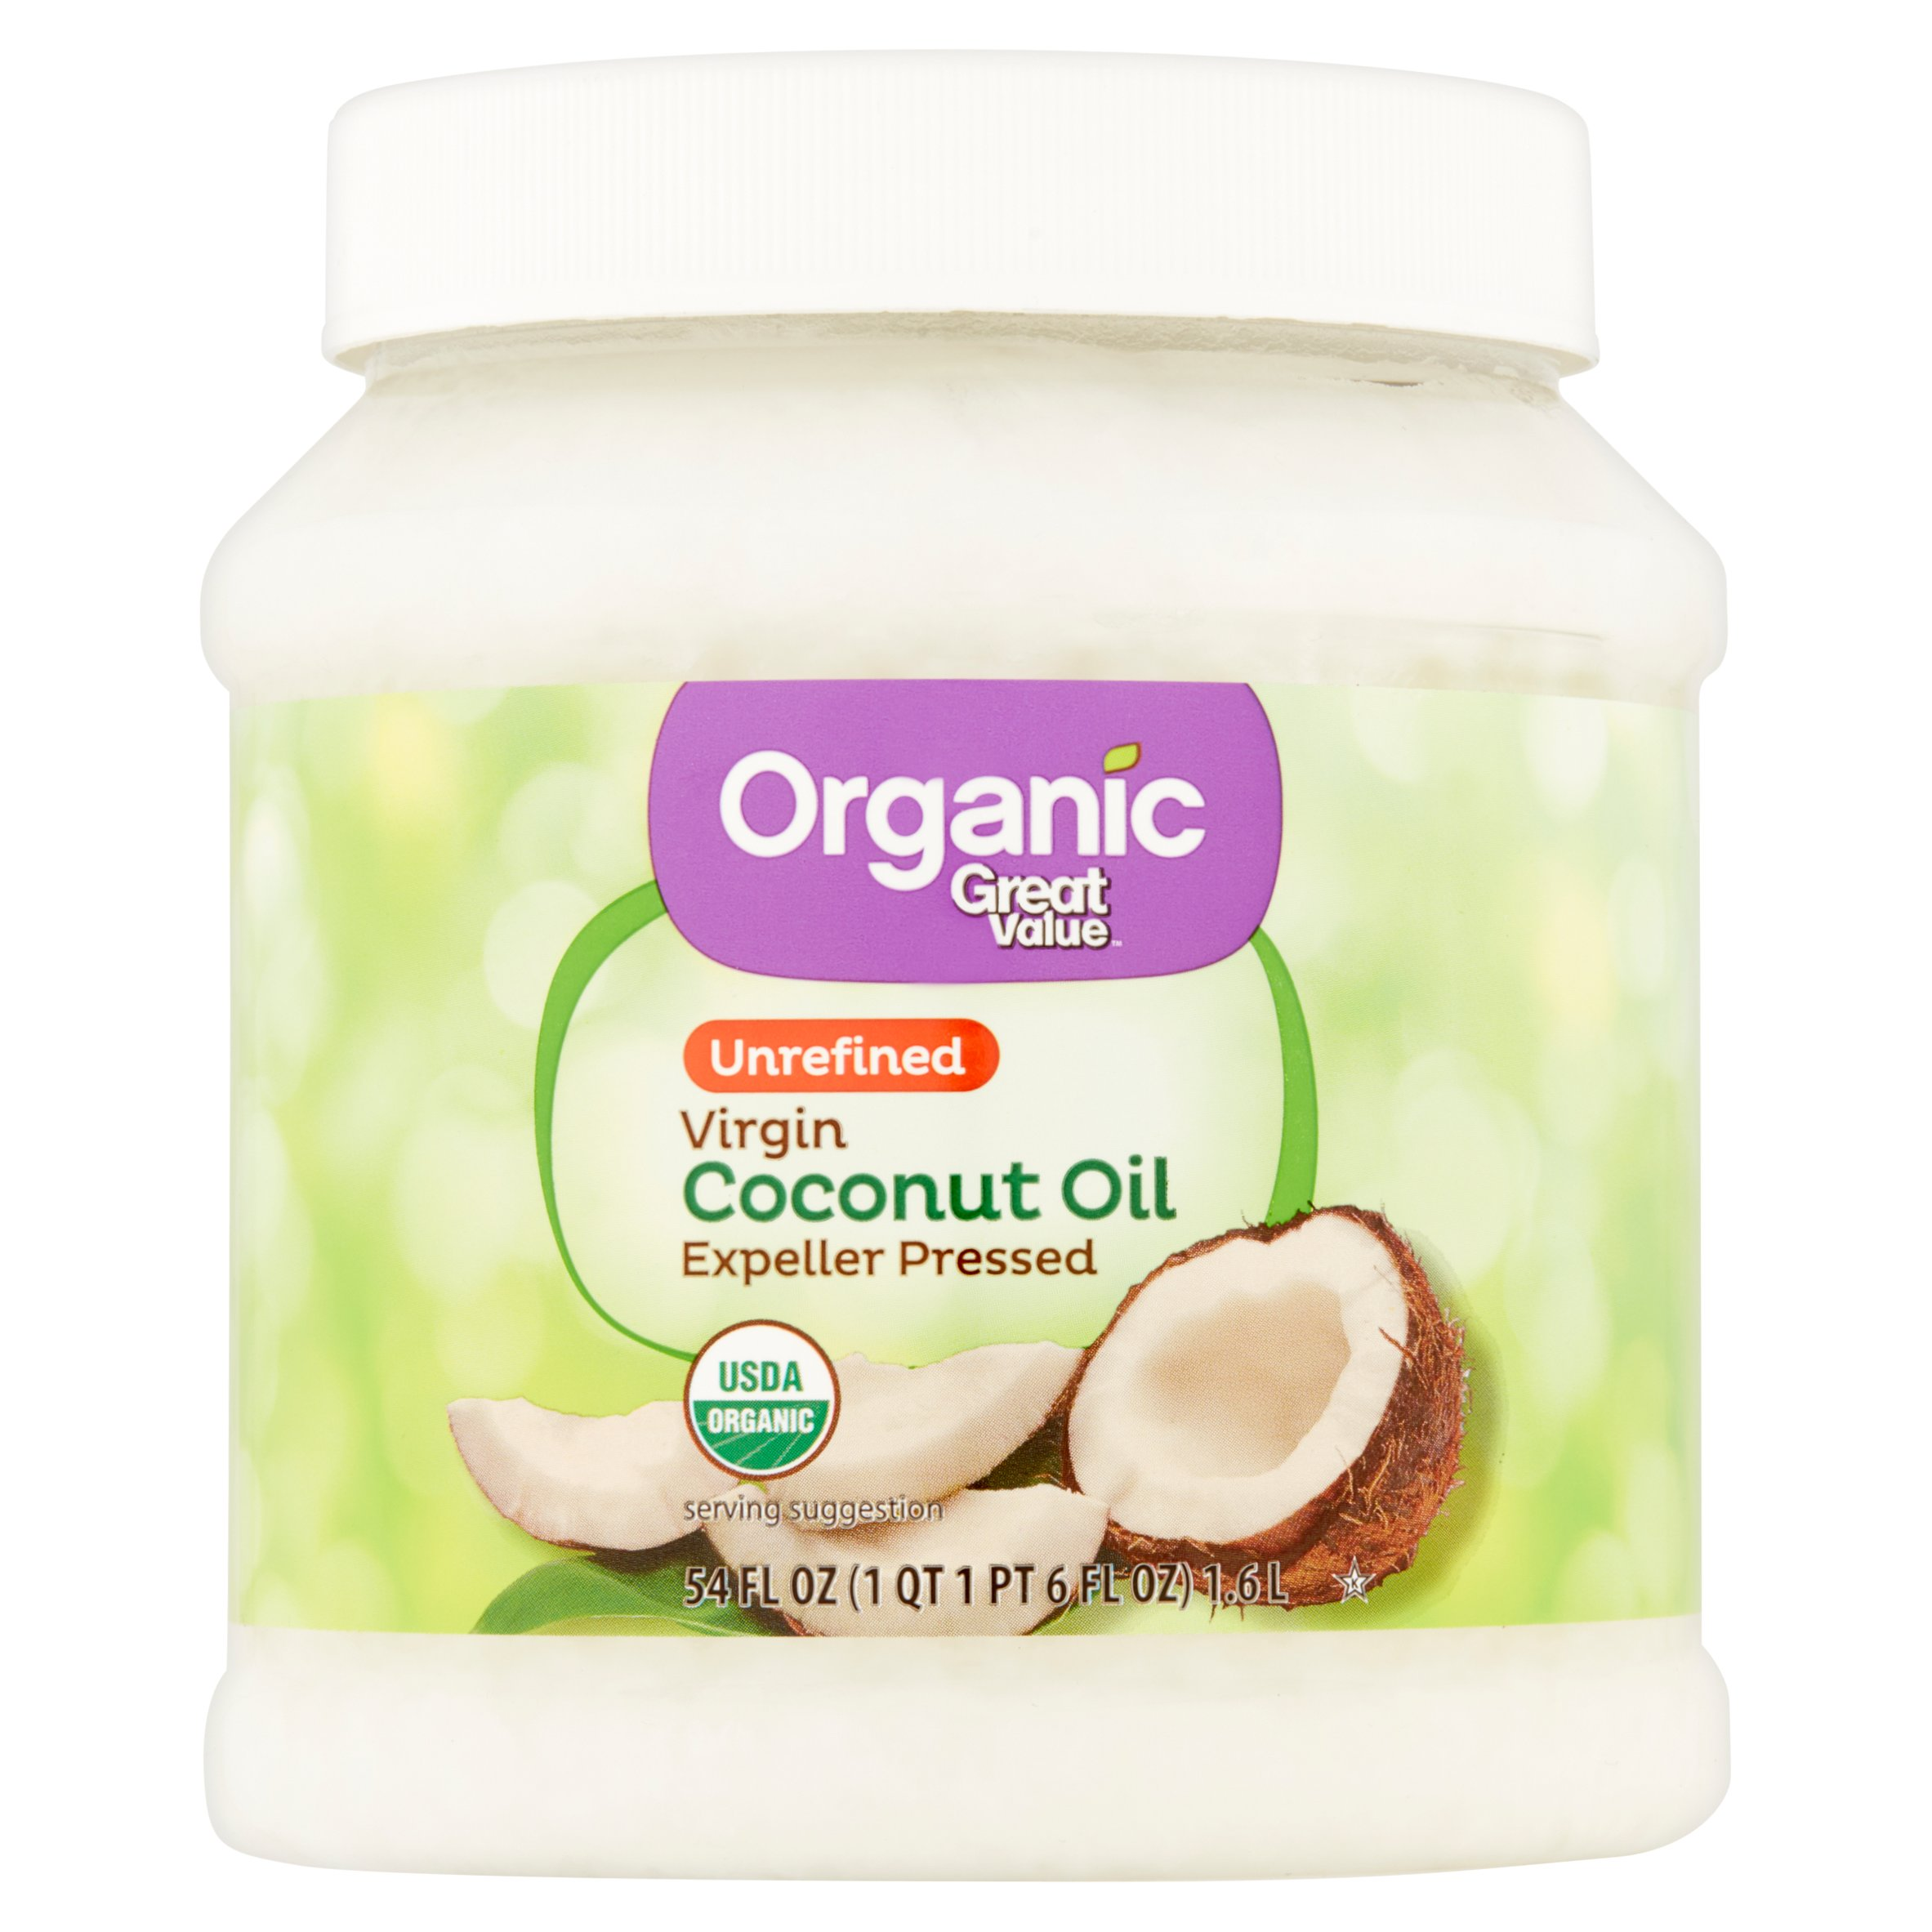 Great Value Organic Unrefined Virgin Coconut Oil, 54 oz